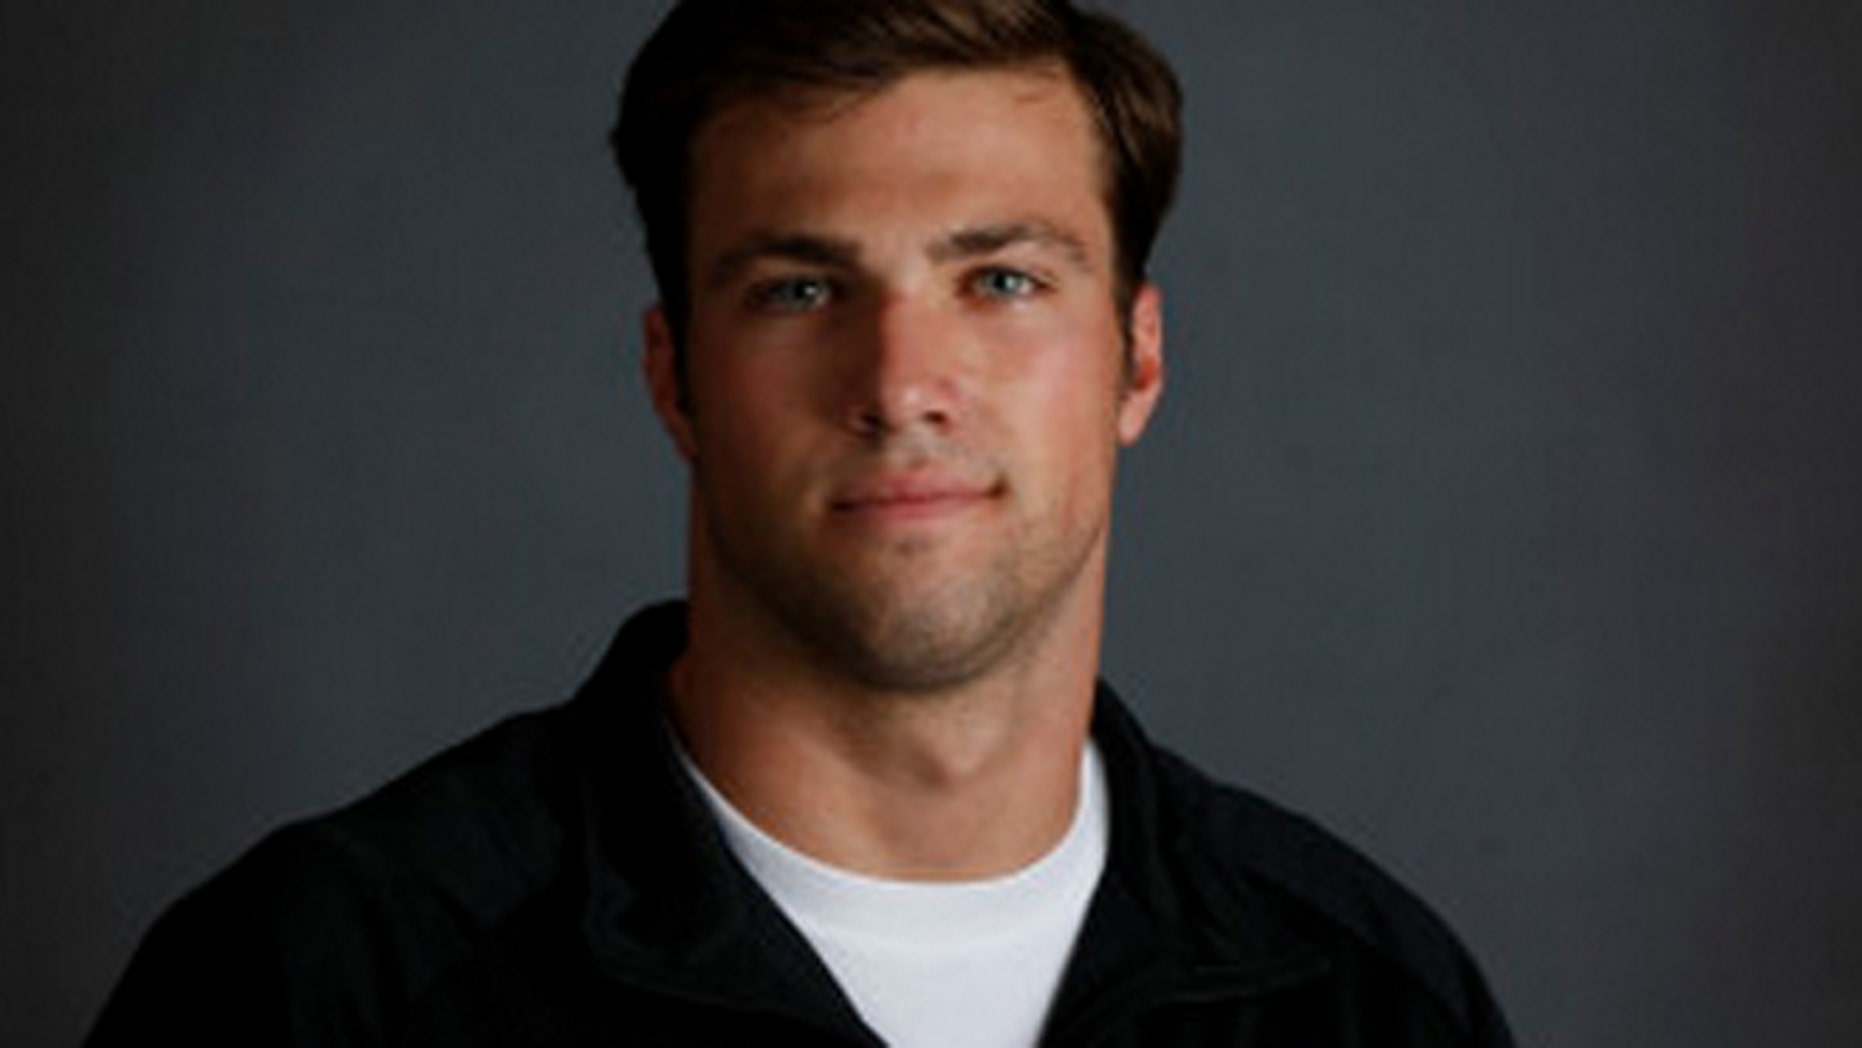 John Servati, 21, swimmer at University of Alabama, died late Monday during the severe storm system that pounded the state.